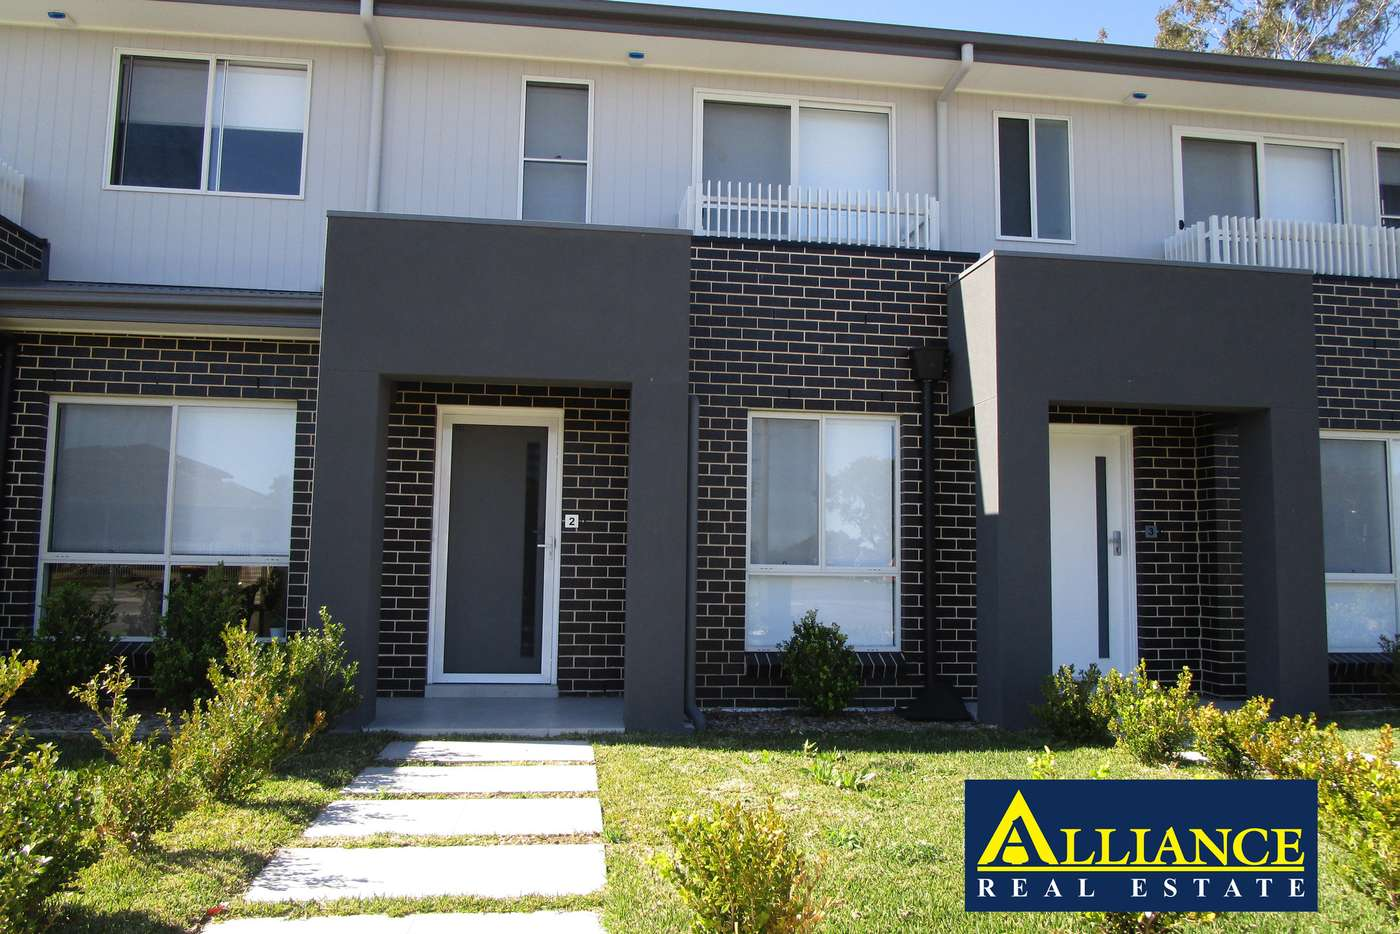 Main view of Homely townhouse listing, 2/30-32 Reserve Road, Casula NSW 2170